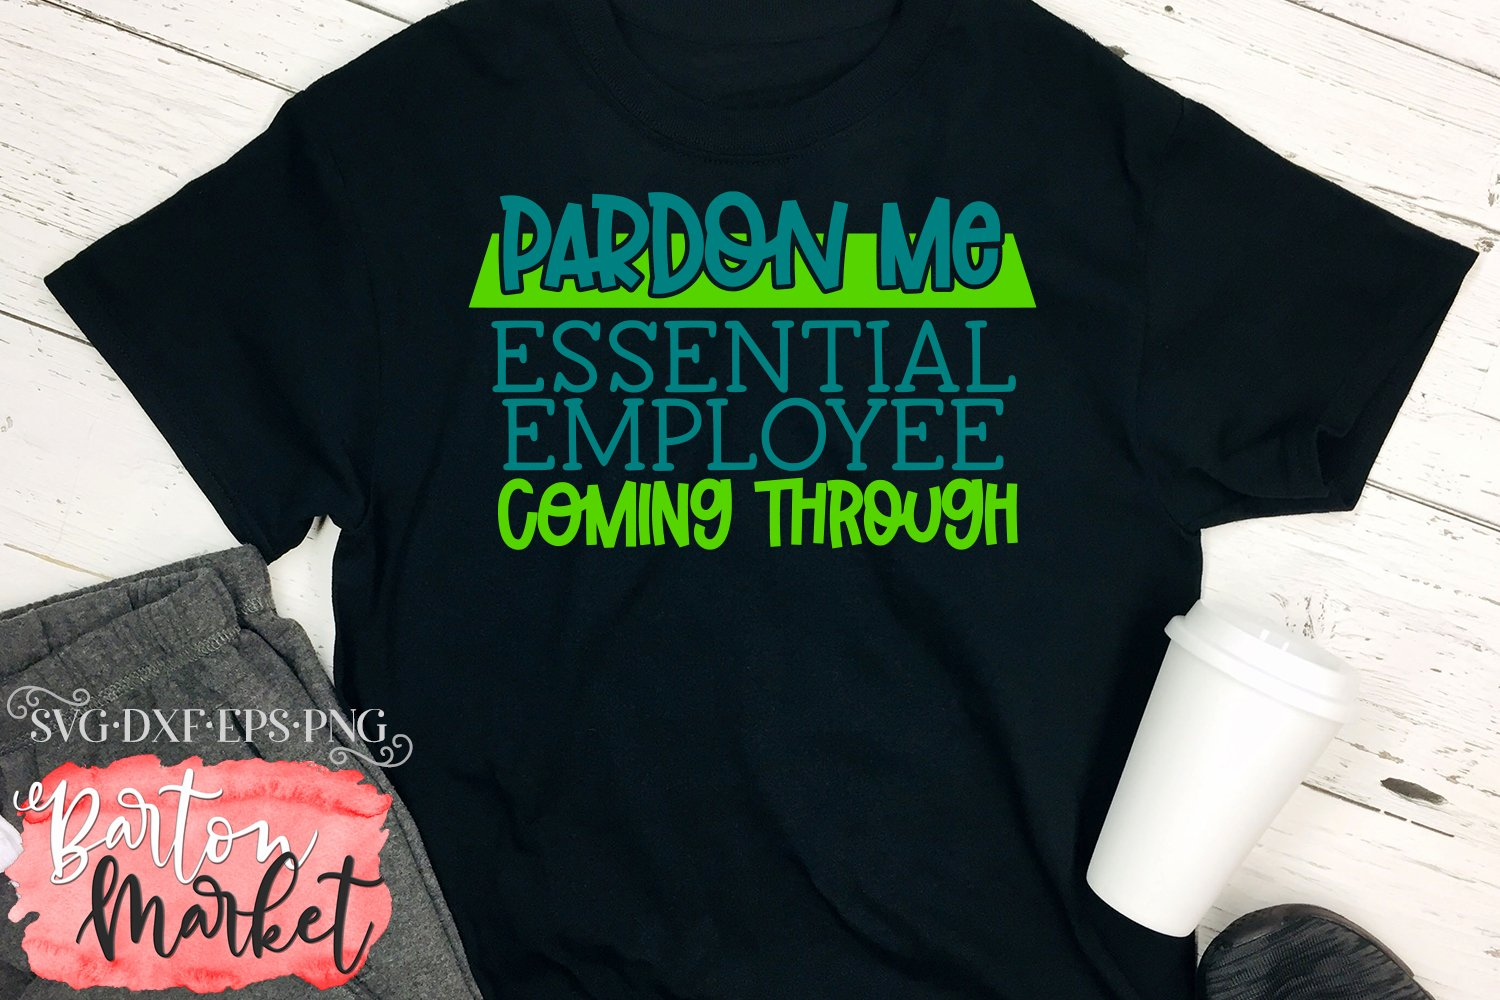 Pardon Me Essential Employee Coming Through SVG DXF EPS PNG example image 3